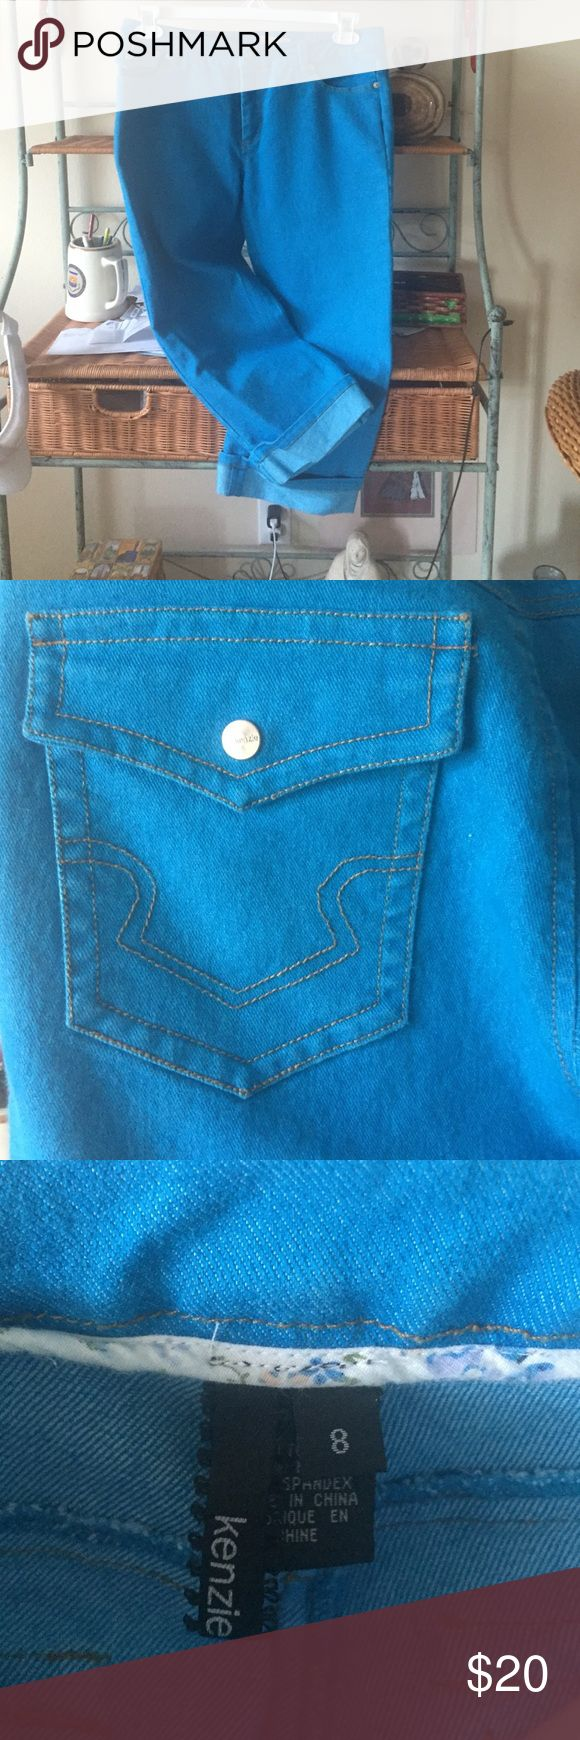 Kenzie crop cuff jeans Adorable bright blue turquoise ankle jeans, cuffed ankles. NWOT kenzie Jeans Ankle & Cropped